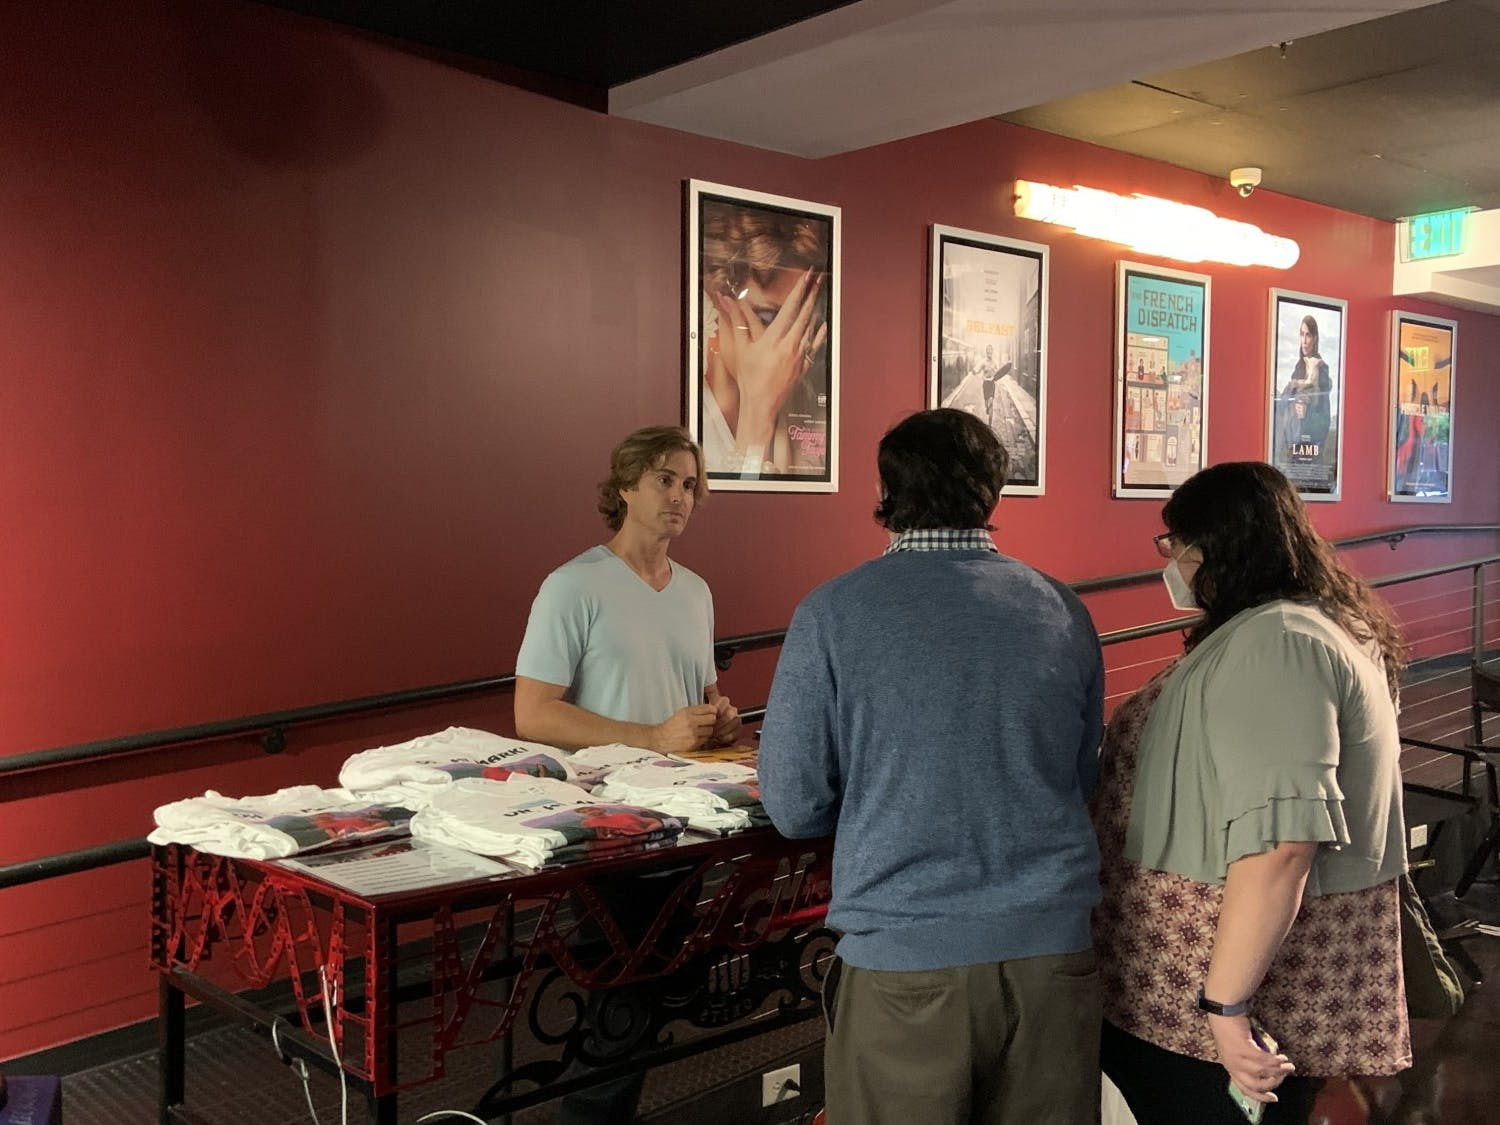 Greg Sestero at a meet and greet before the movie, at The Nickelodeon Theatre.